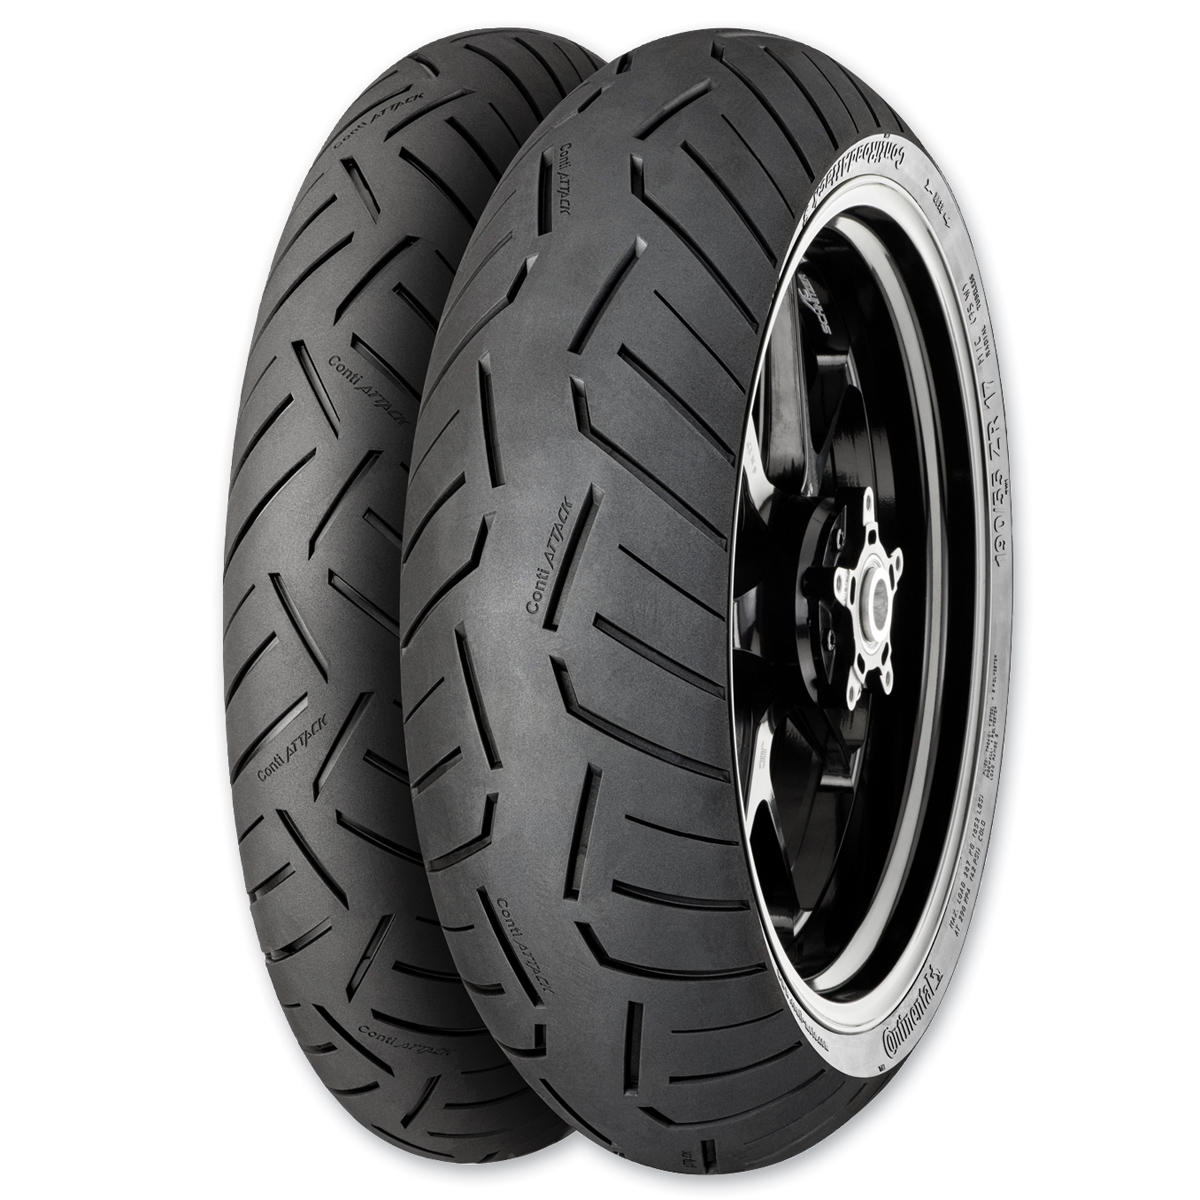 Continental Road Attack 3 120/70ZR17 Front Tire